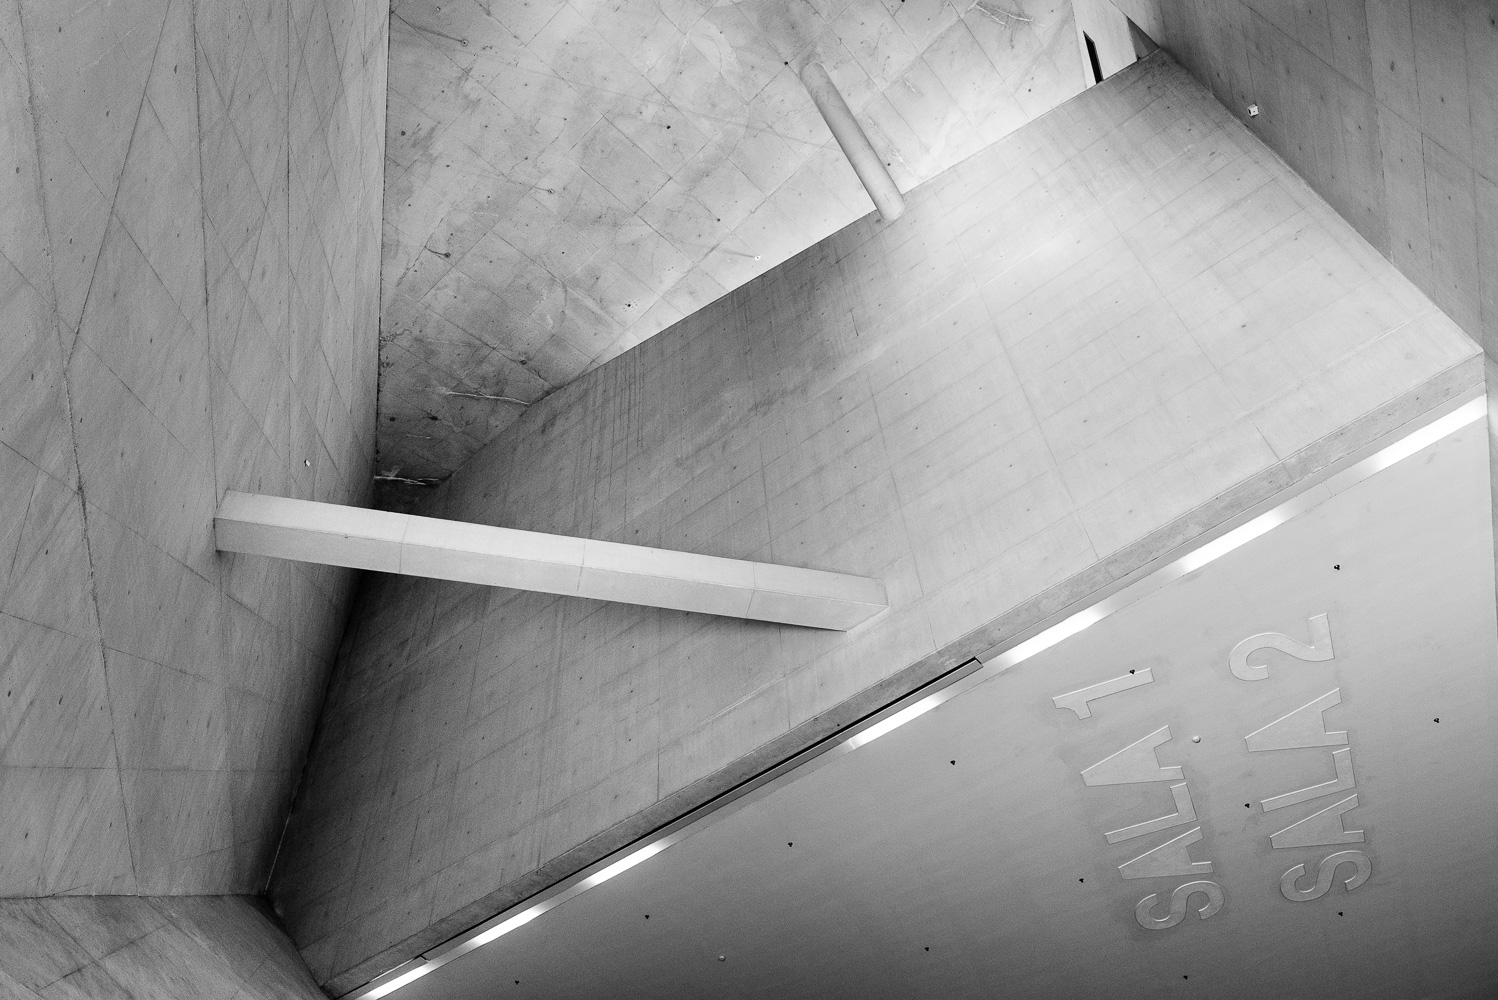 dacian-groza-concrete-black-and-white-architectural-photography-08-1660.jpg